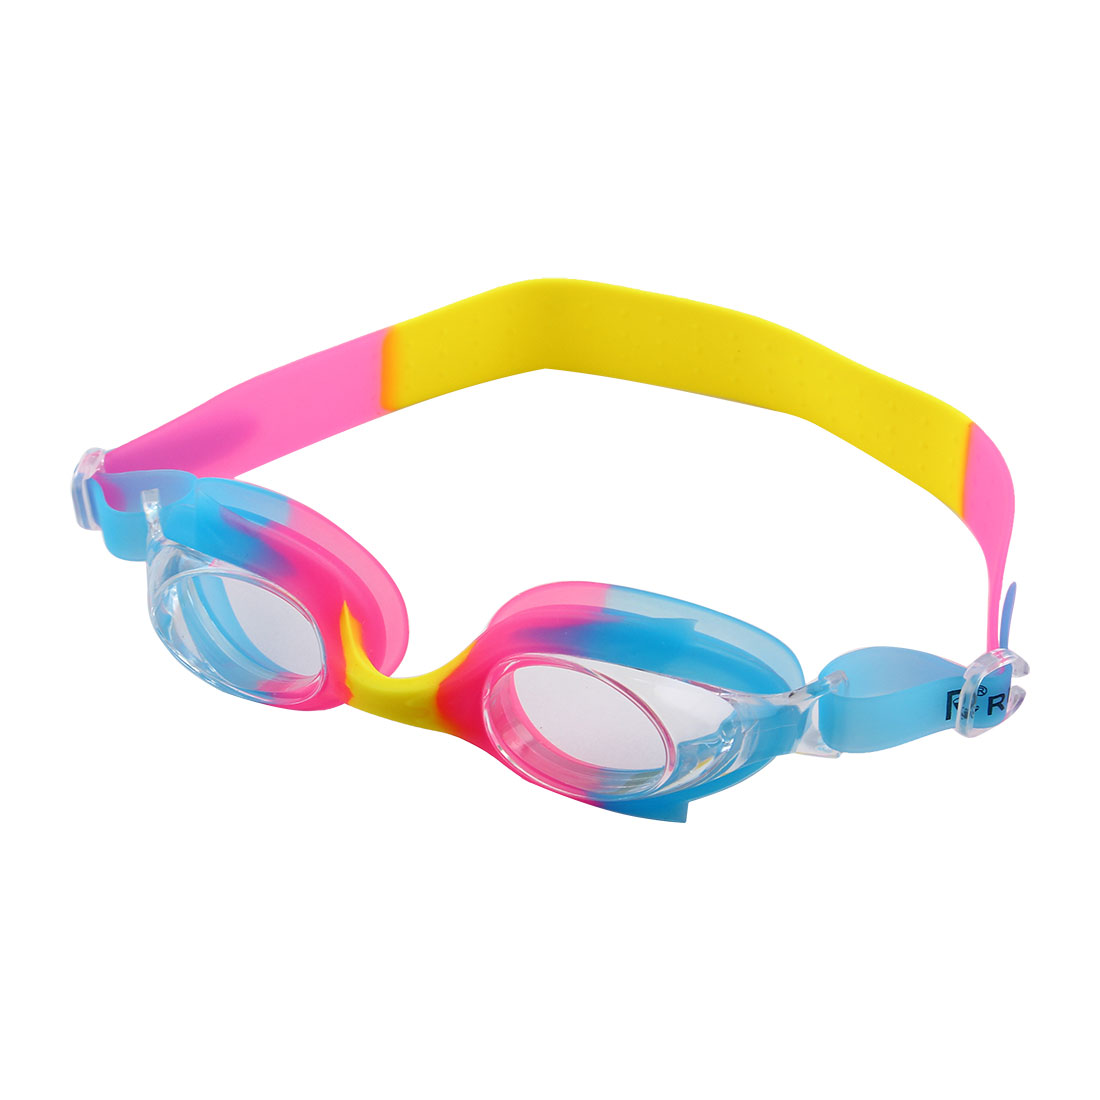 Silicone Adjustable Belt Clear Vision Anti Fog Swim Glasses Swimming Goggles Pink Yellow Blue w Storage Case for Youth Boys Girls